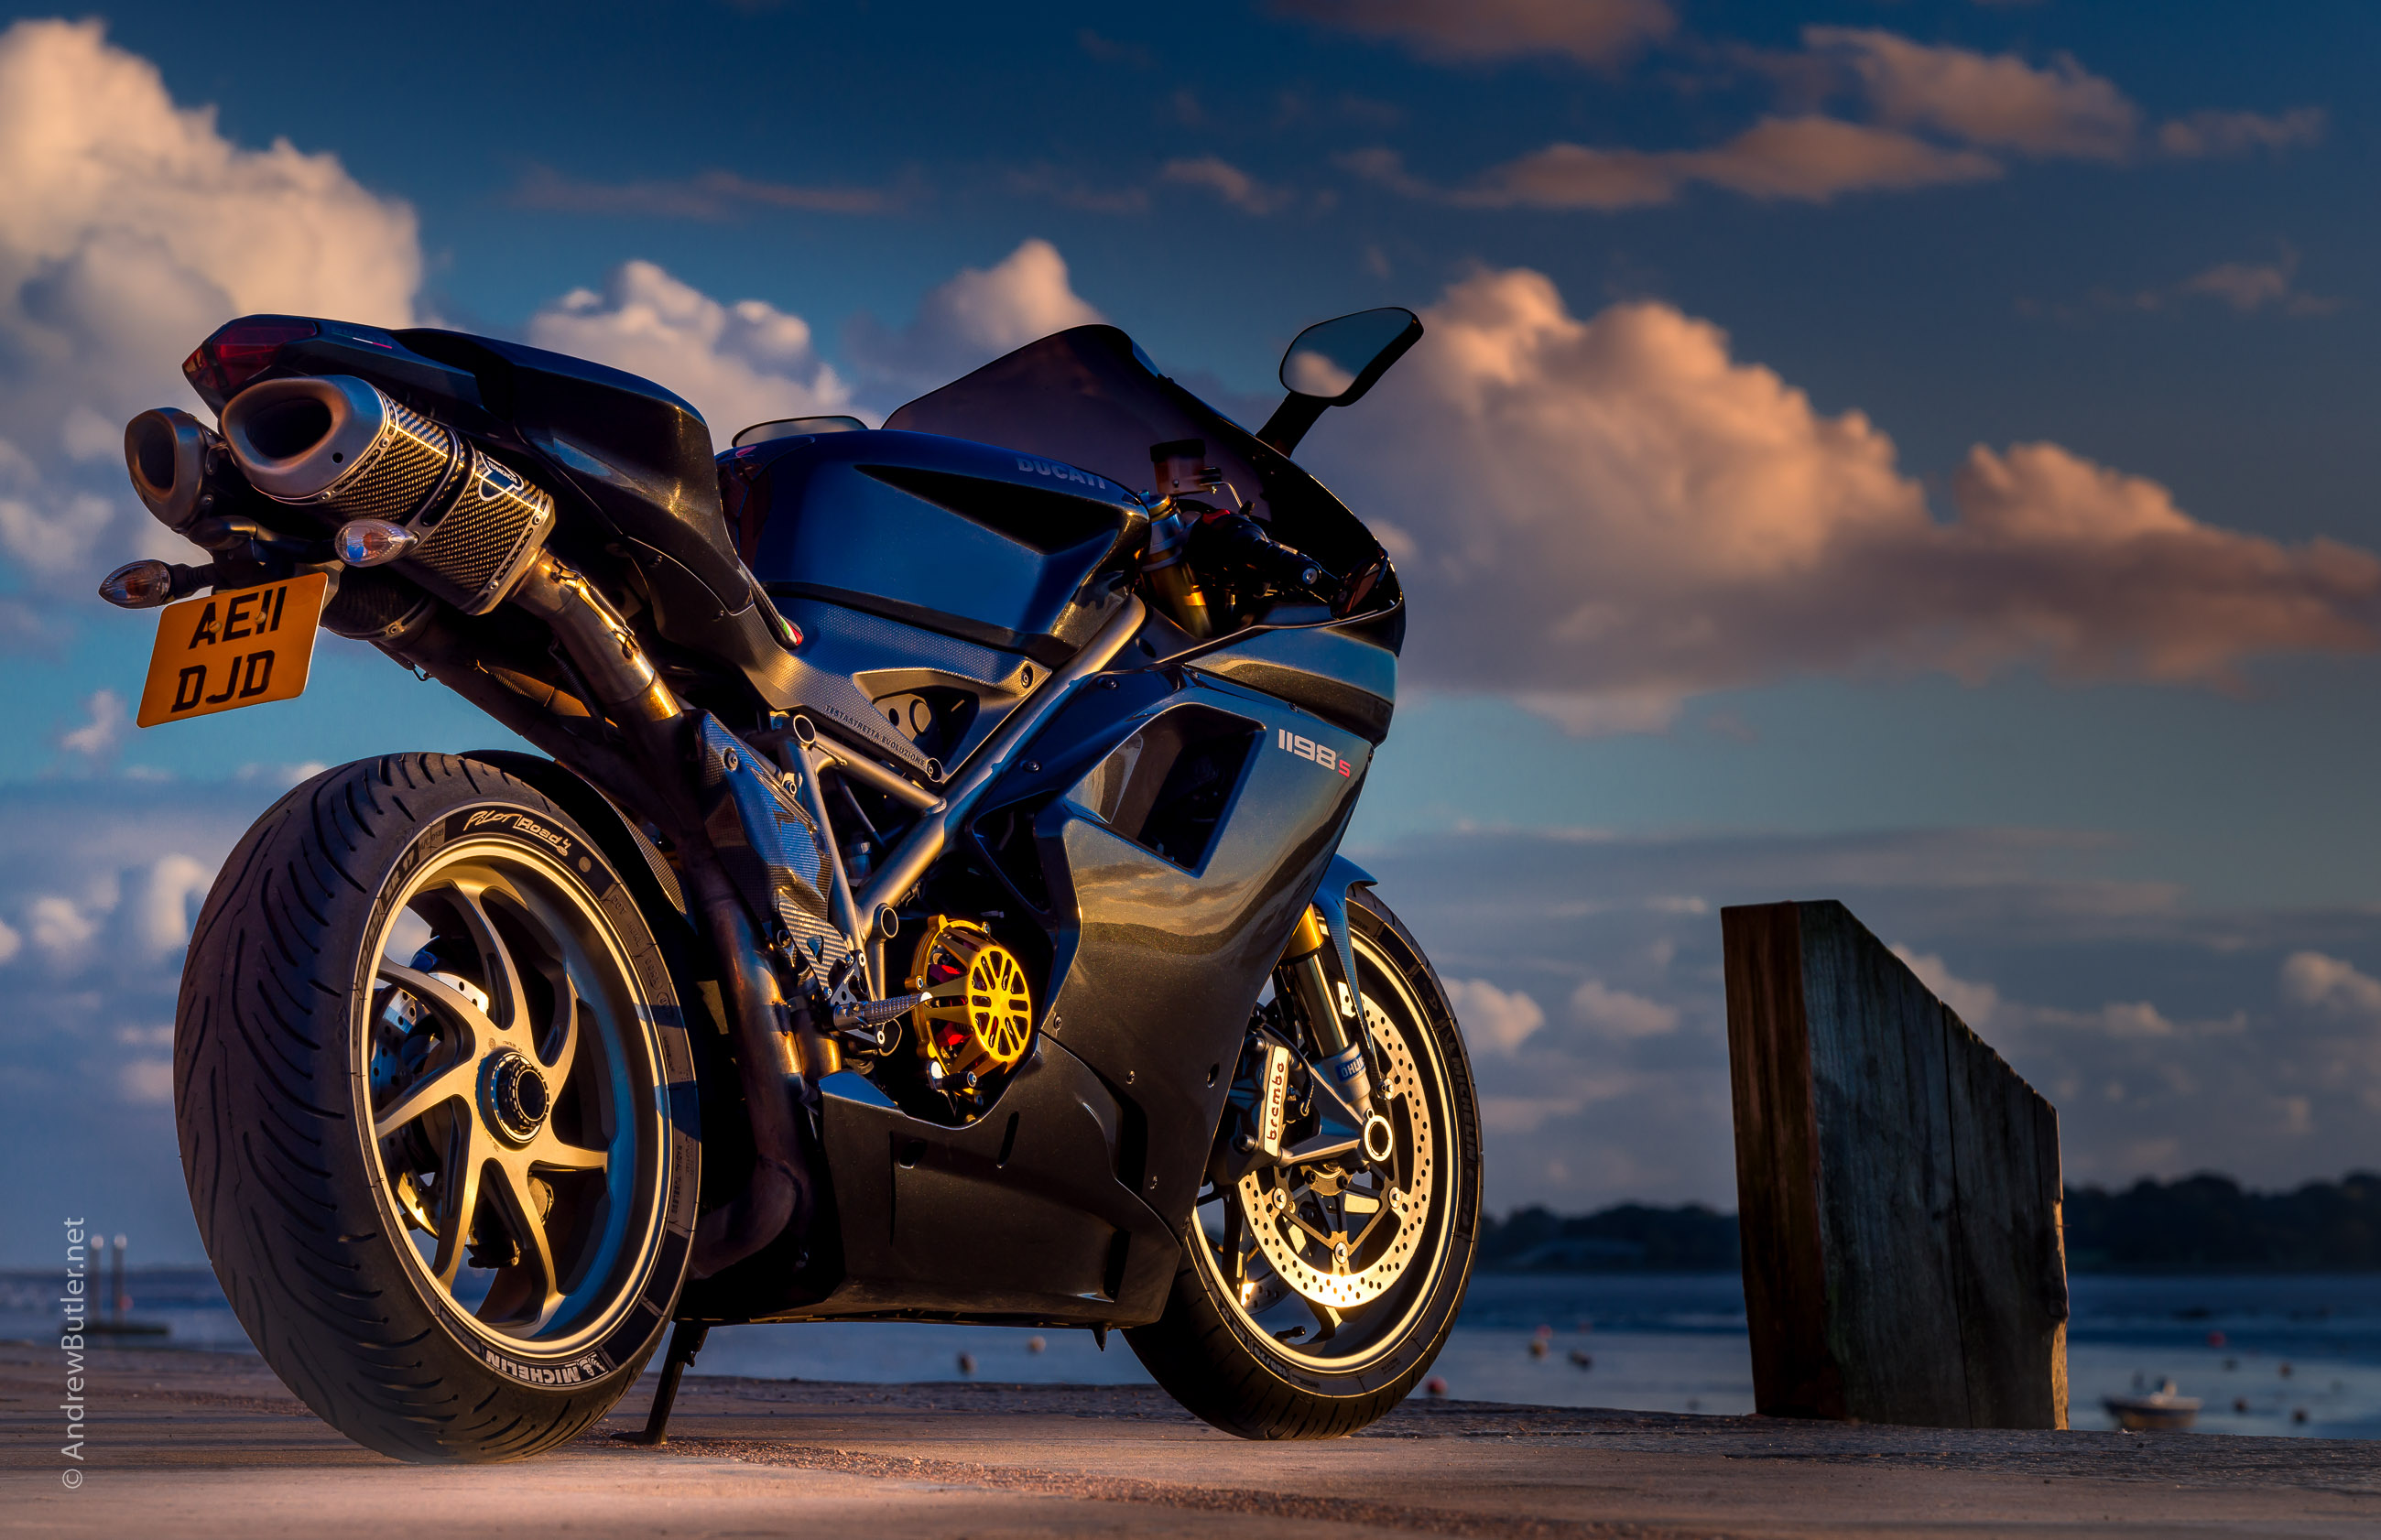 Motorbike Photography Using Natural Light